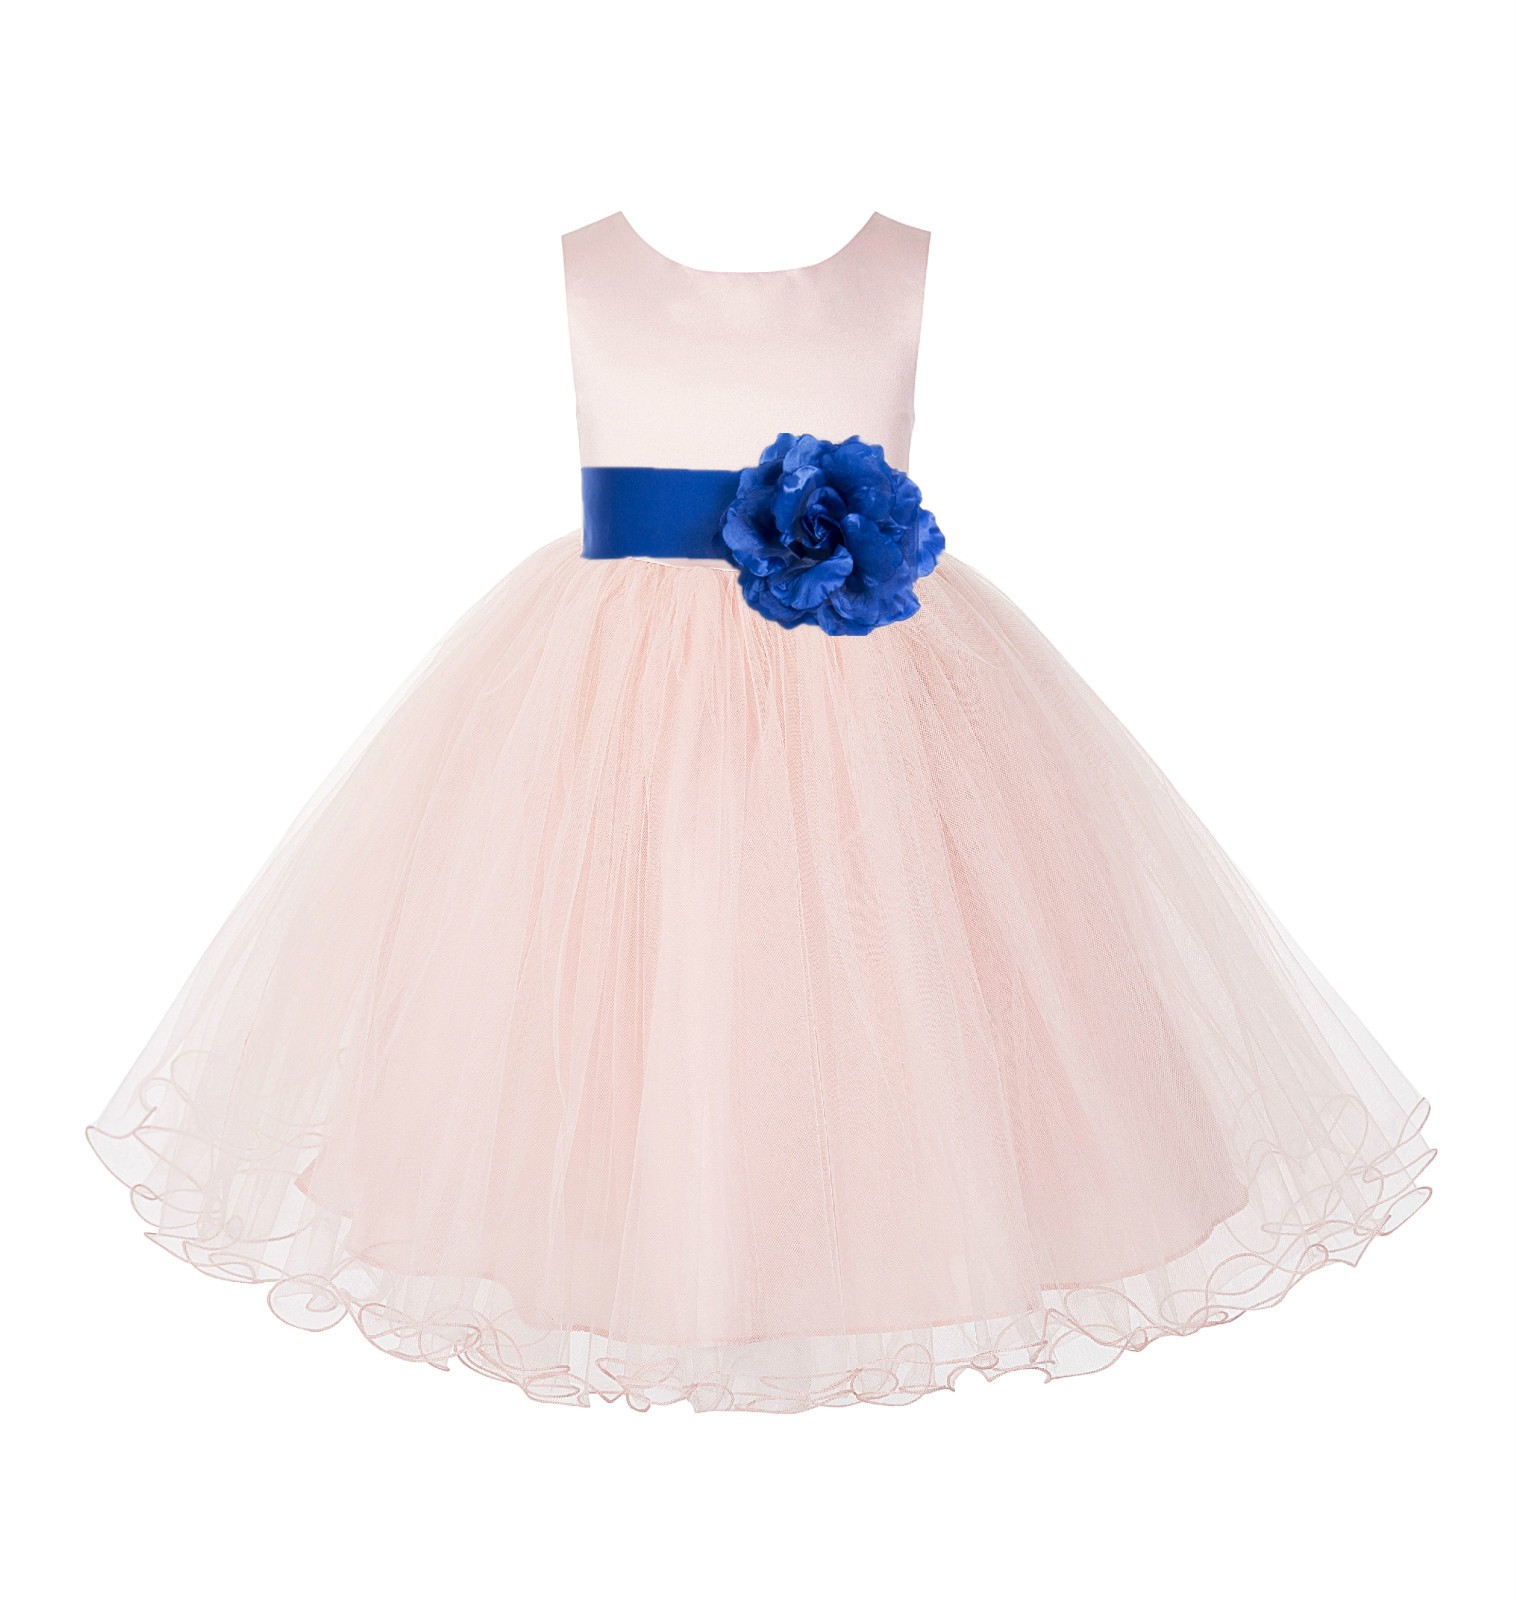 Blush Pink / Royal Blue Tulle Rattail Edge Flower Girl Dress Pageant Recital 829S